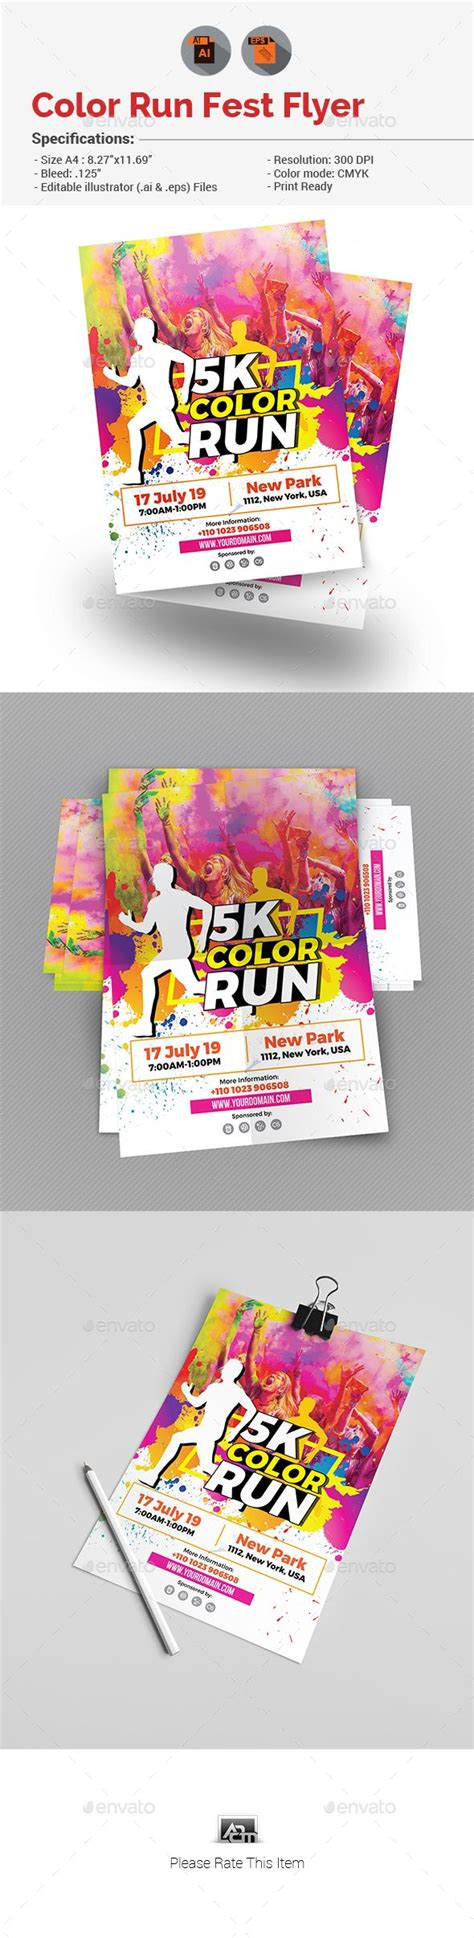 Color Run Flyer Color Run Flyer Template